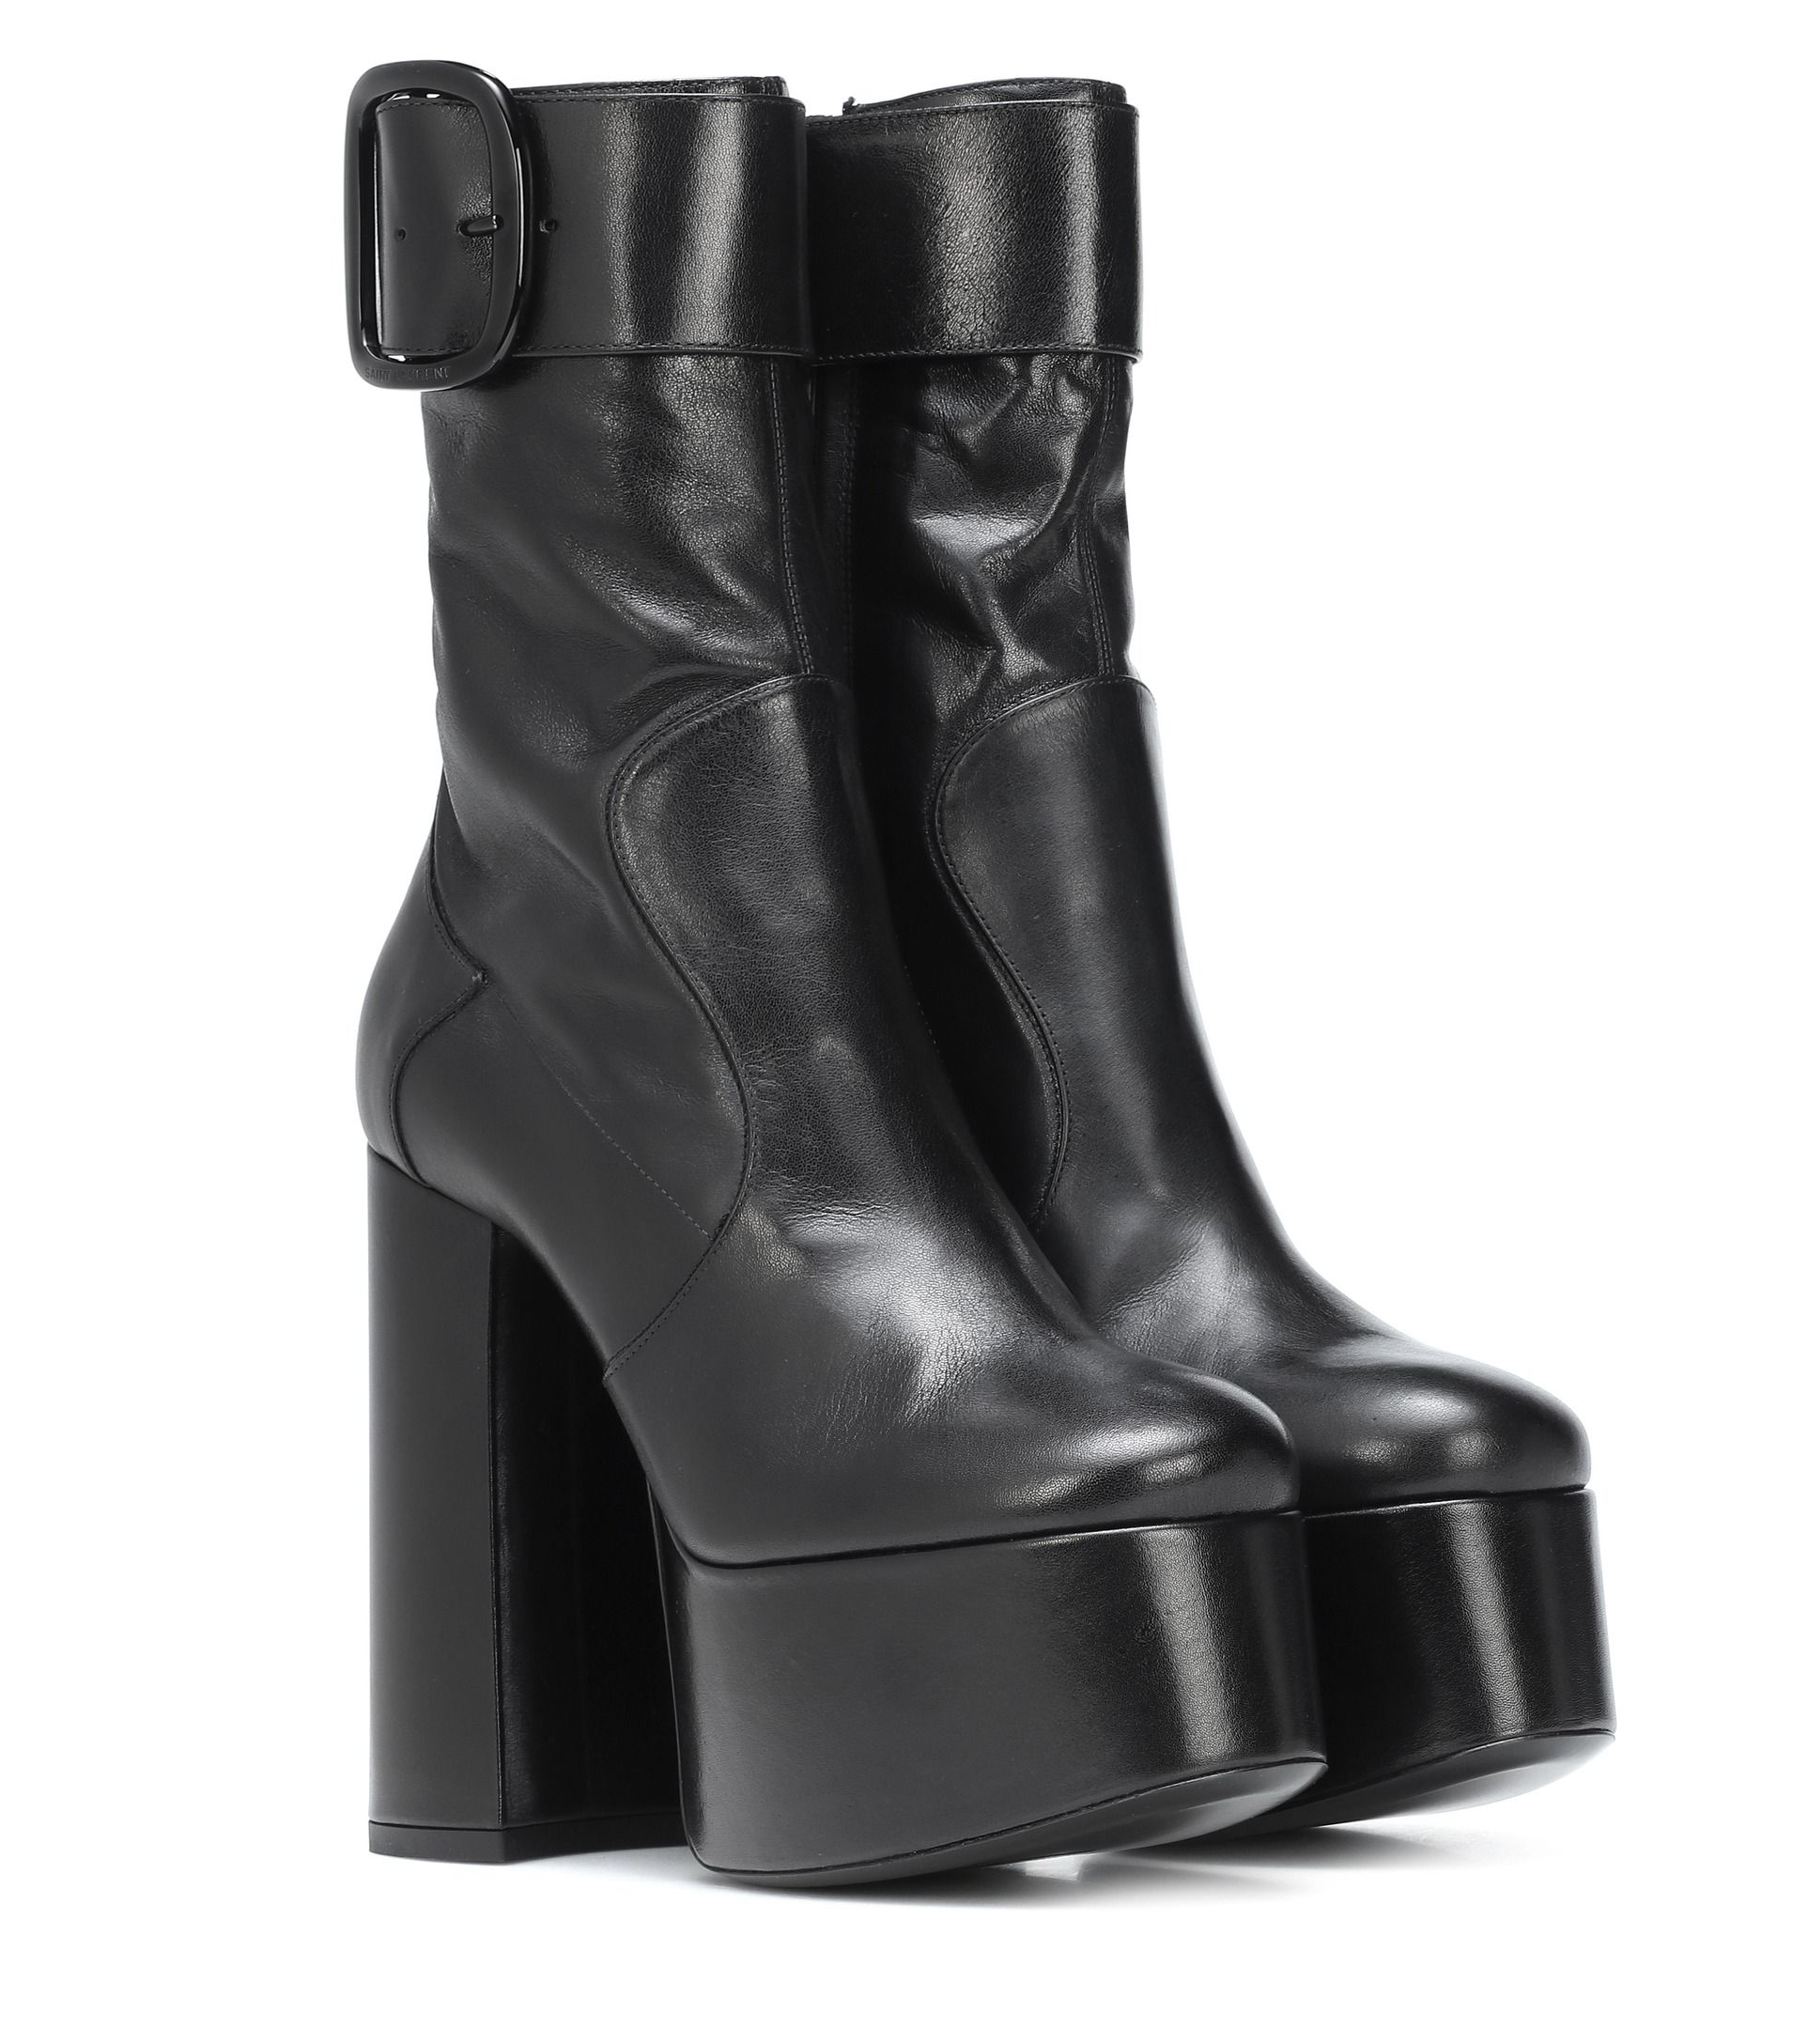 shop-saint-laurent-billy-platform-ankle-boots-black-leather